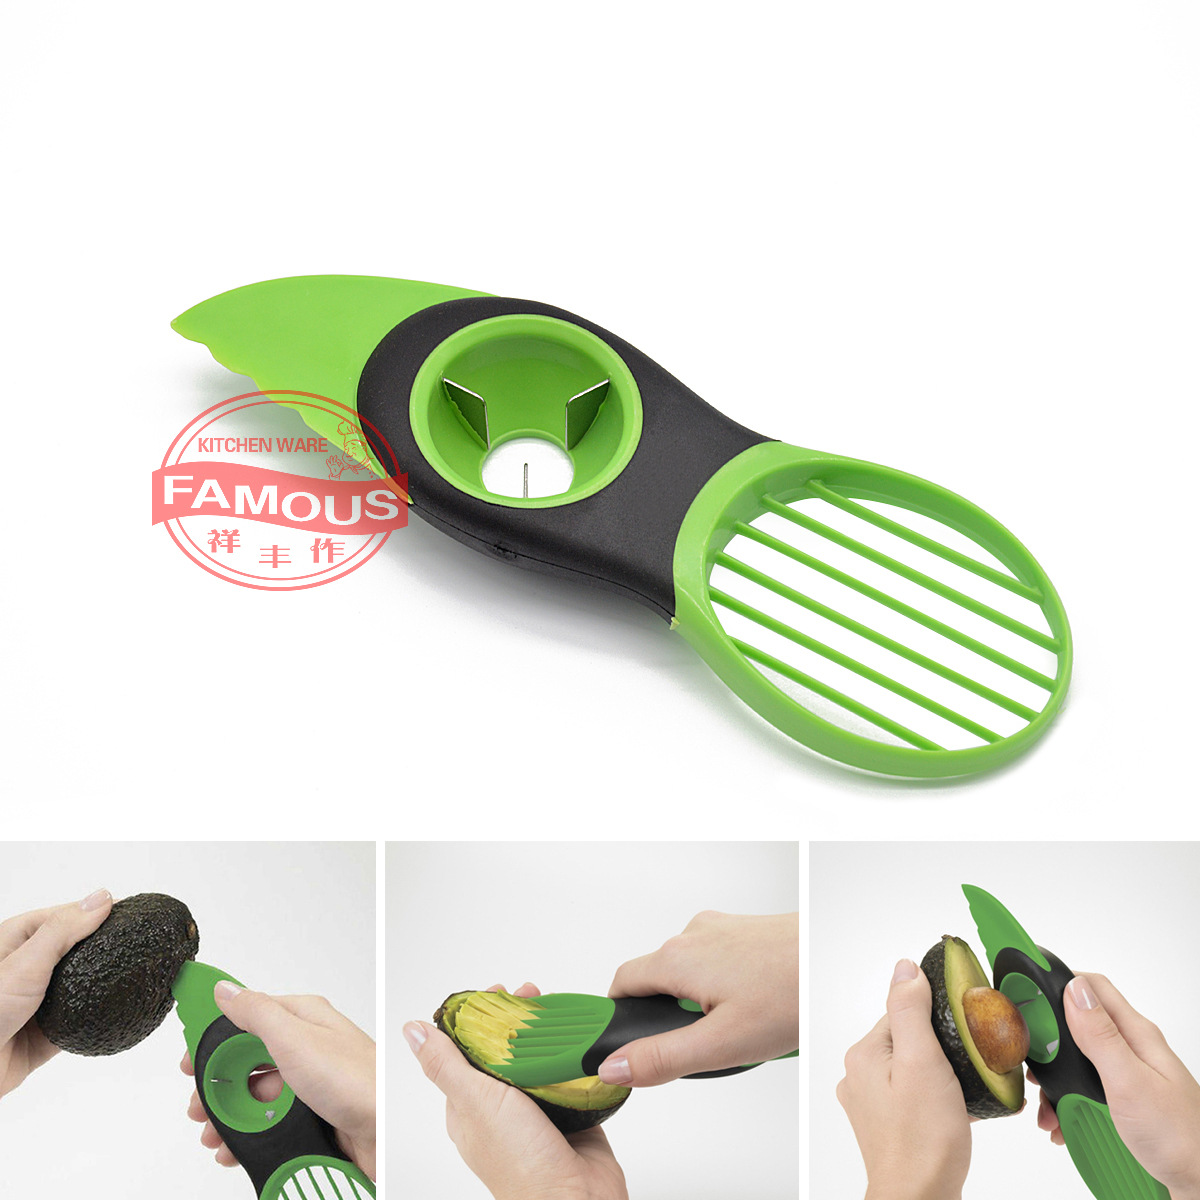 Hot Selling Multi-functional Avocado Cutter Fruit Splitter Three-in-One Avocado Corer